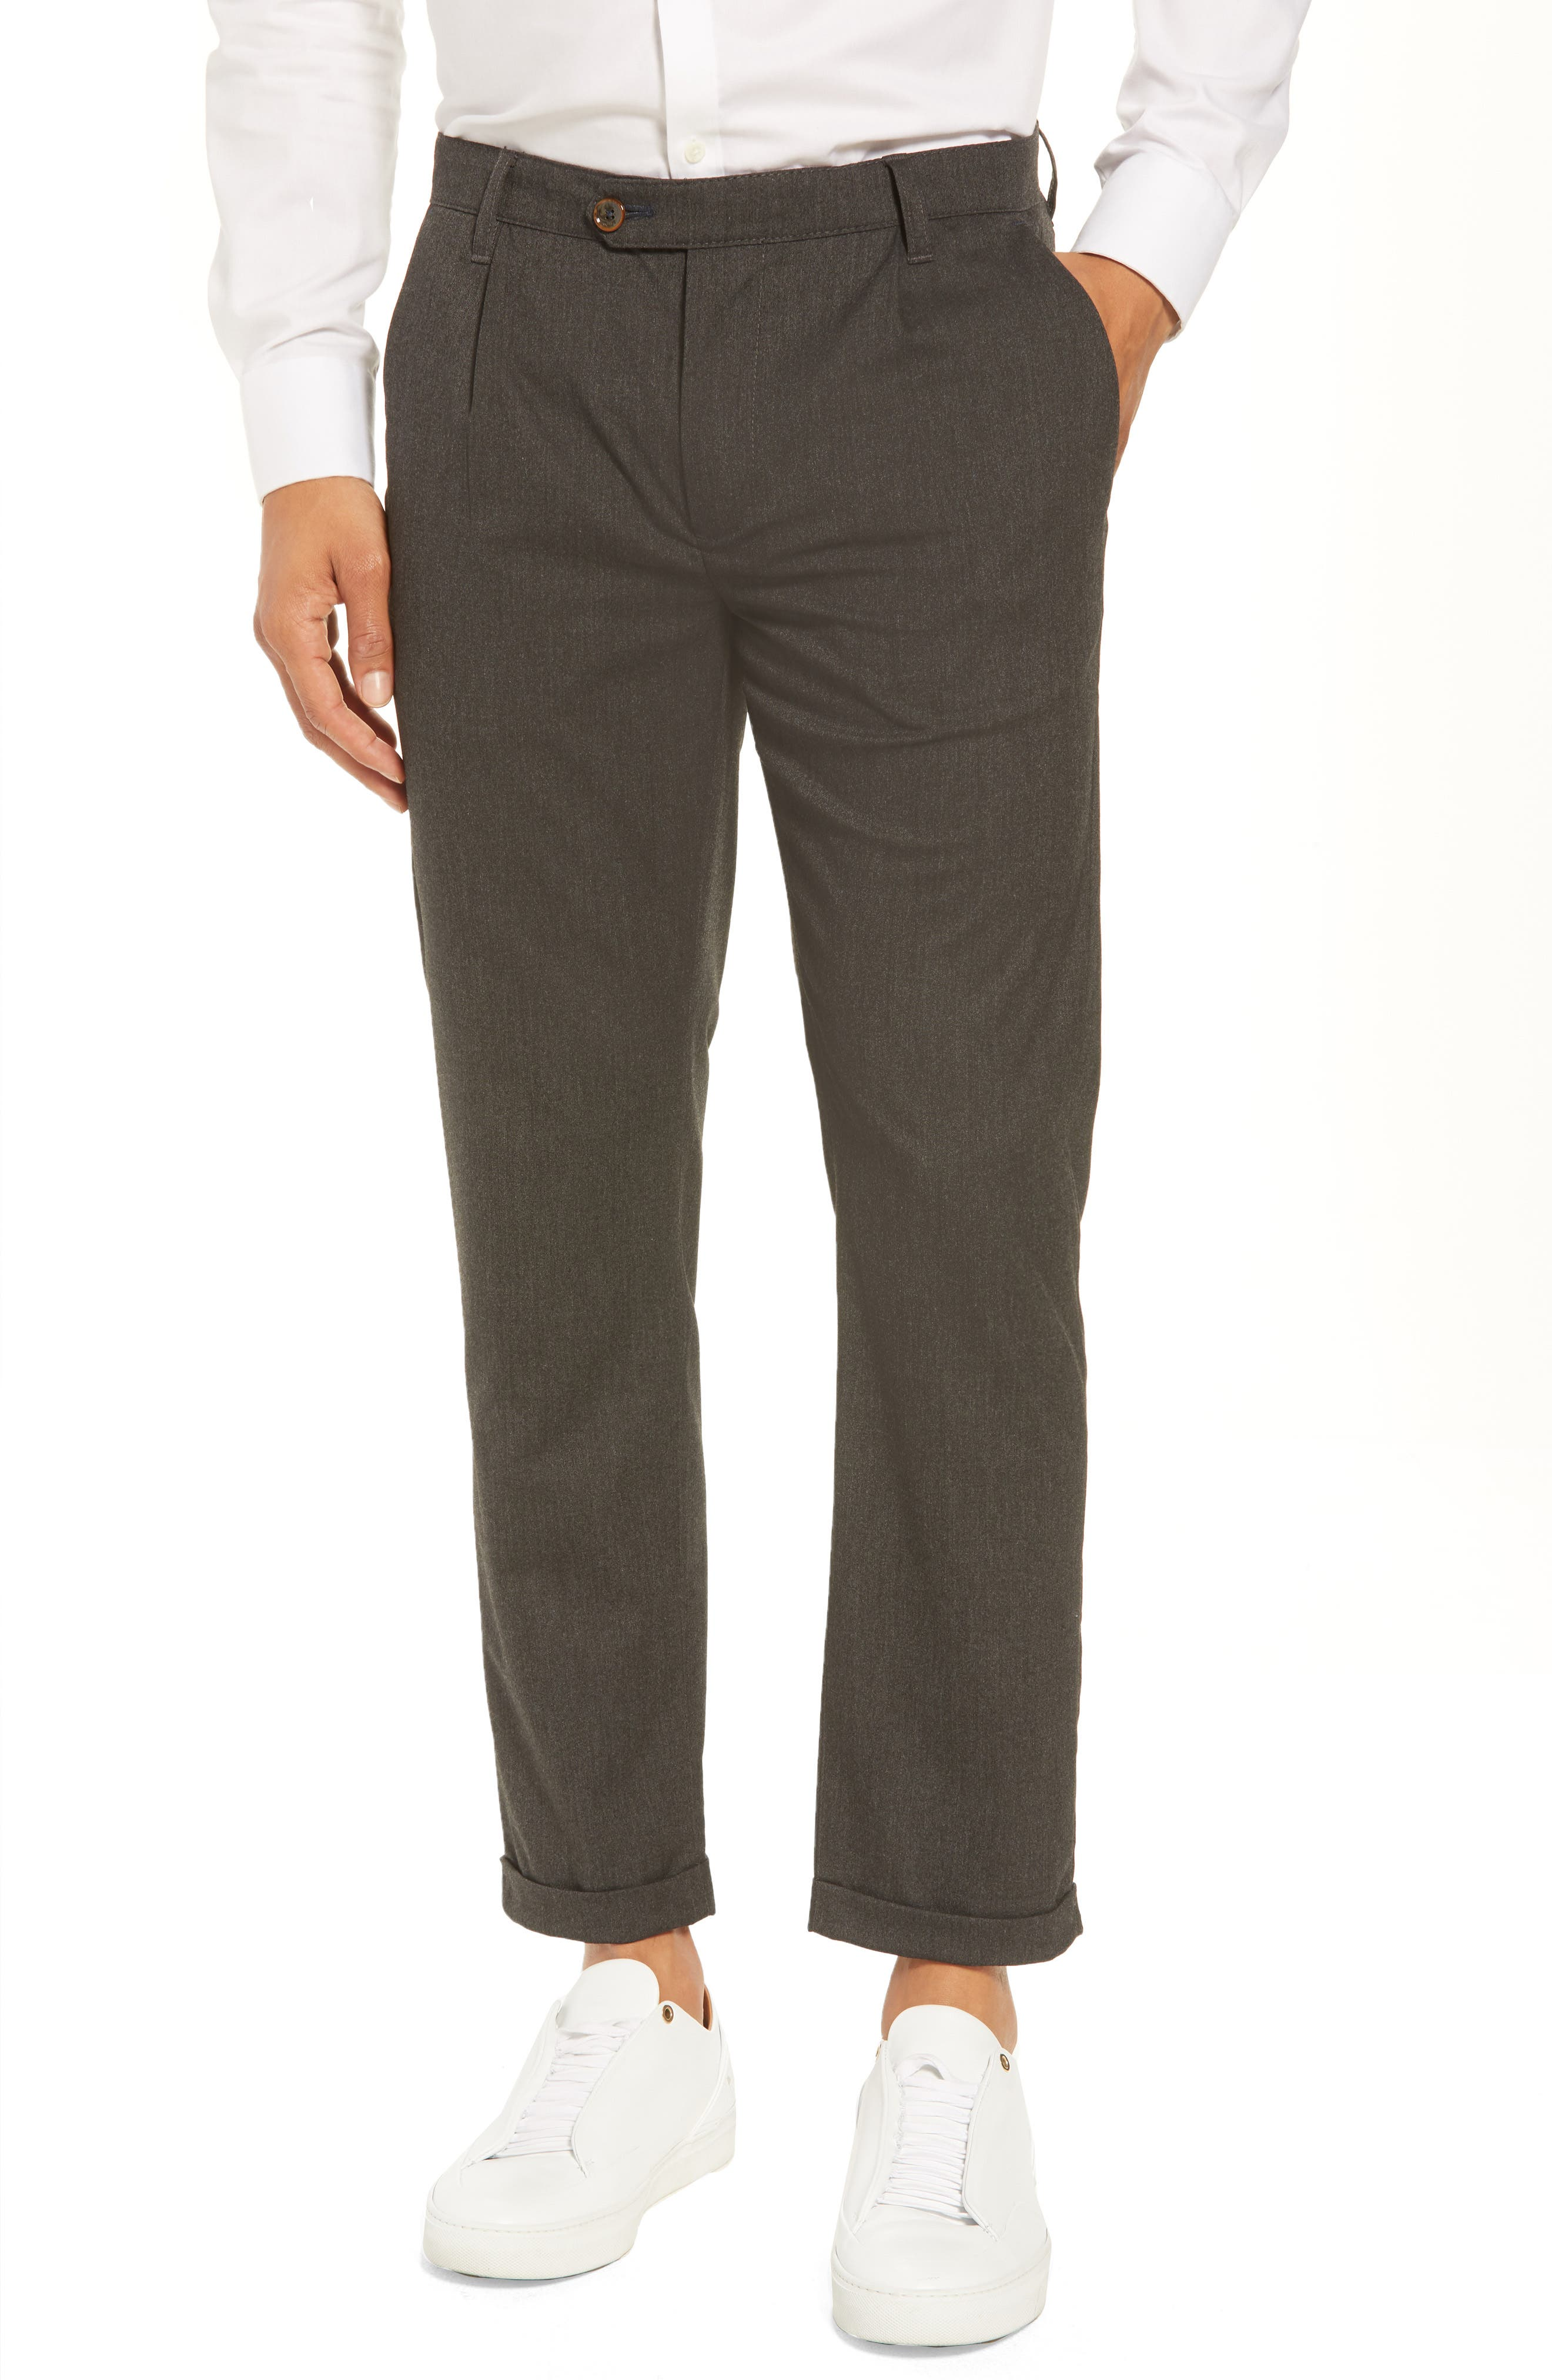 TED BAKER LONDON,                             Champi Pleated Cropped Pants,                             Main thumbnail 1, color,                             001